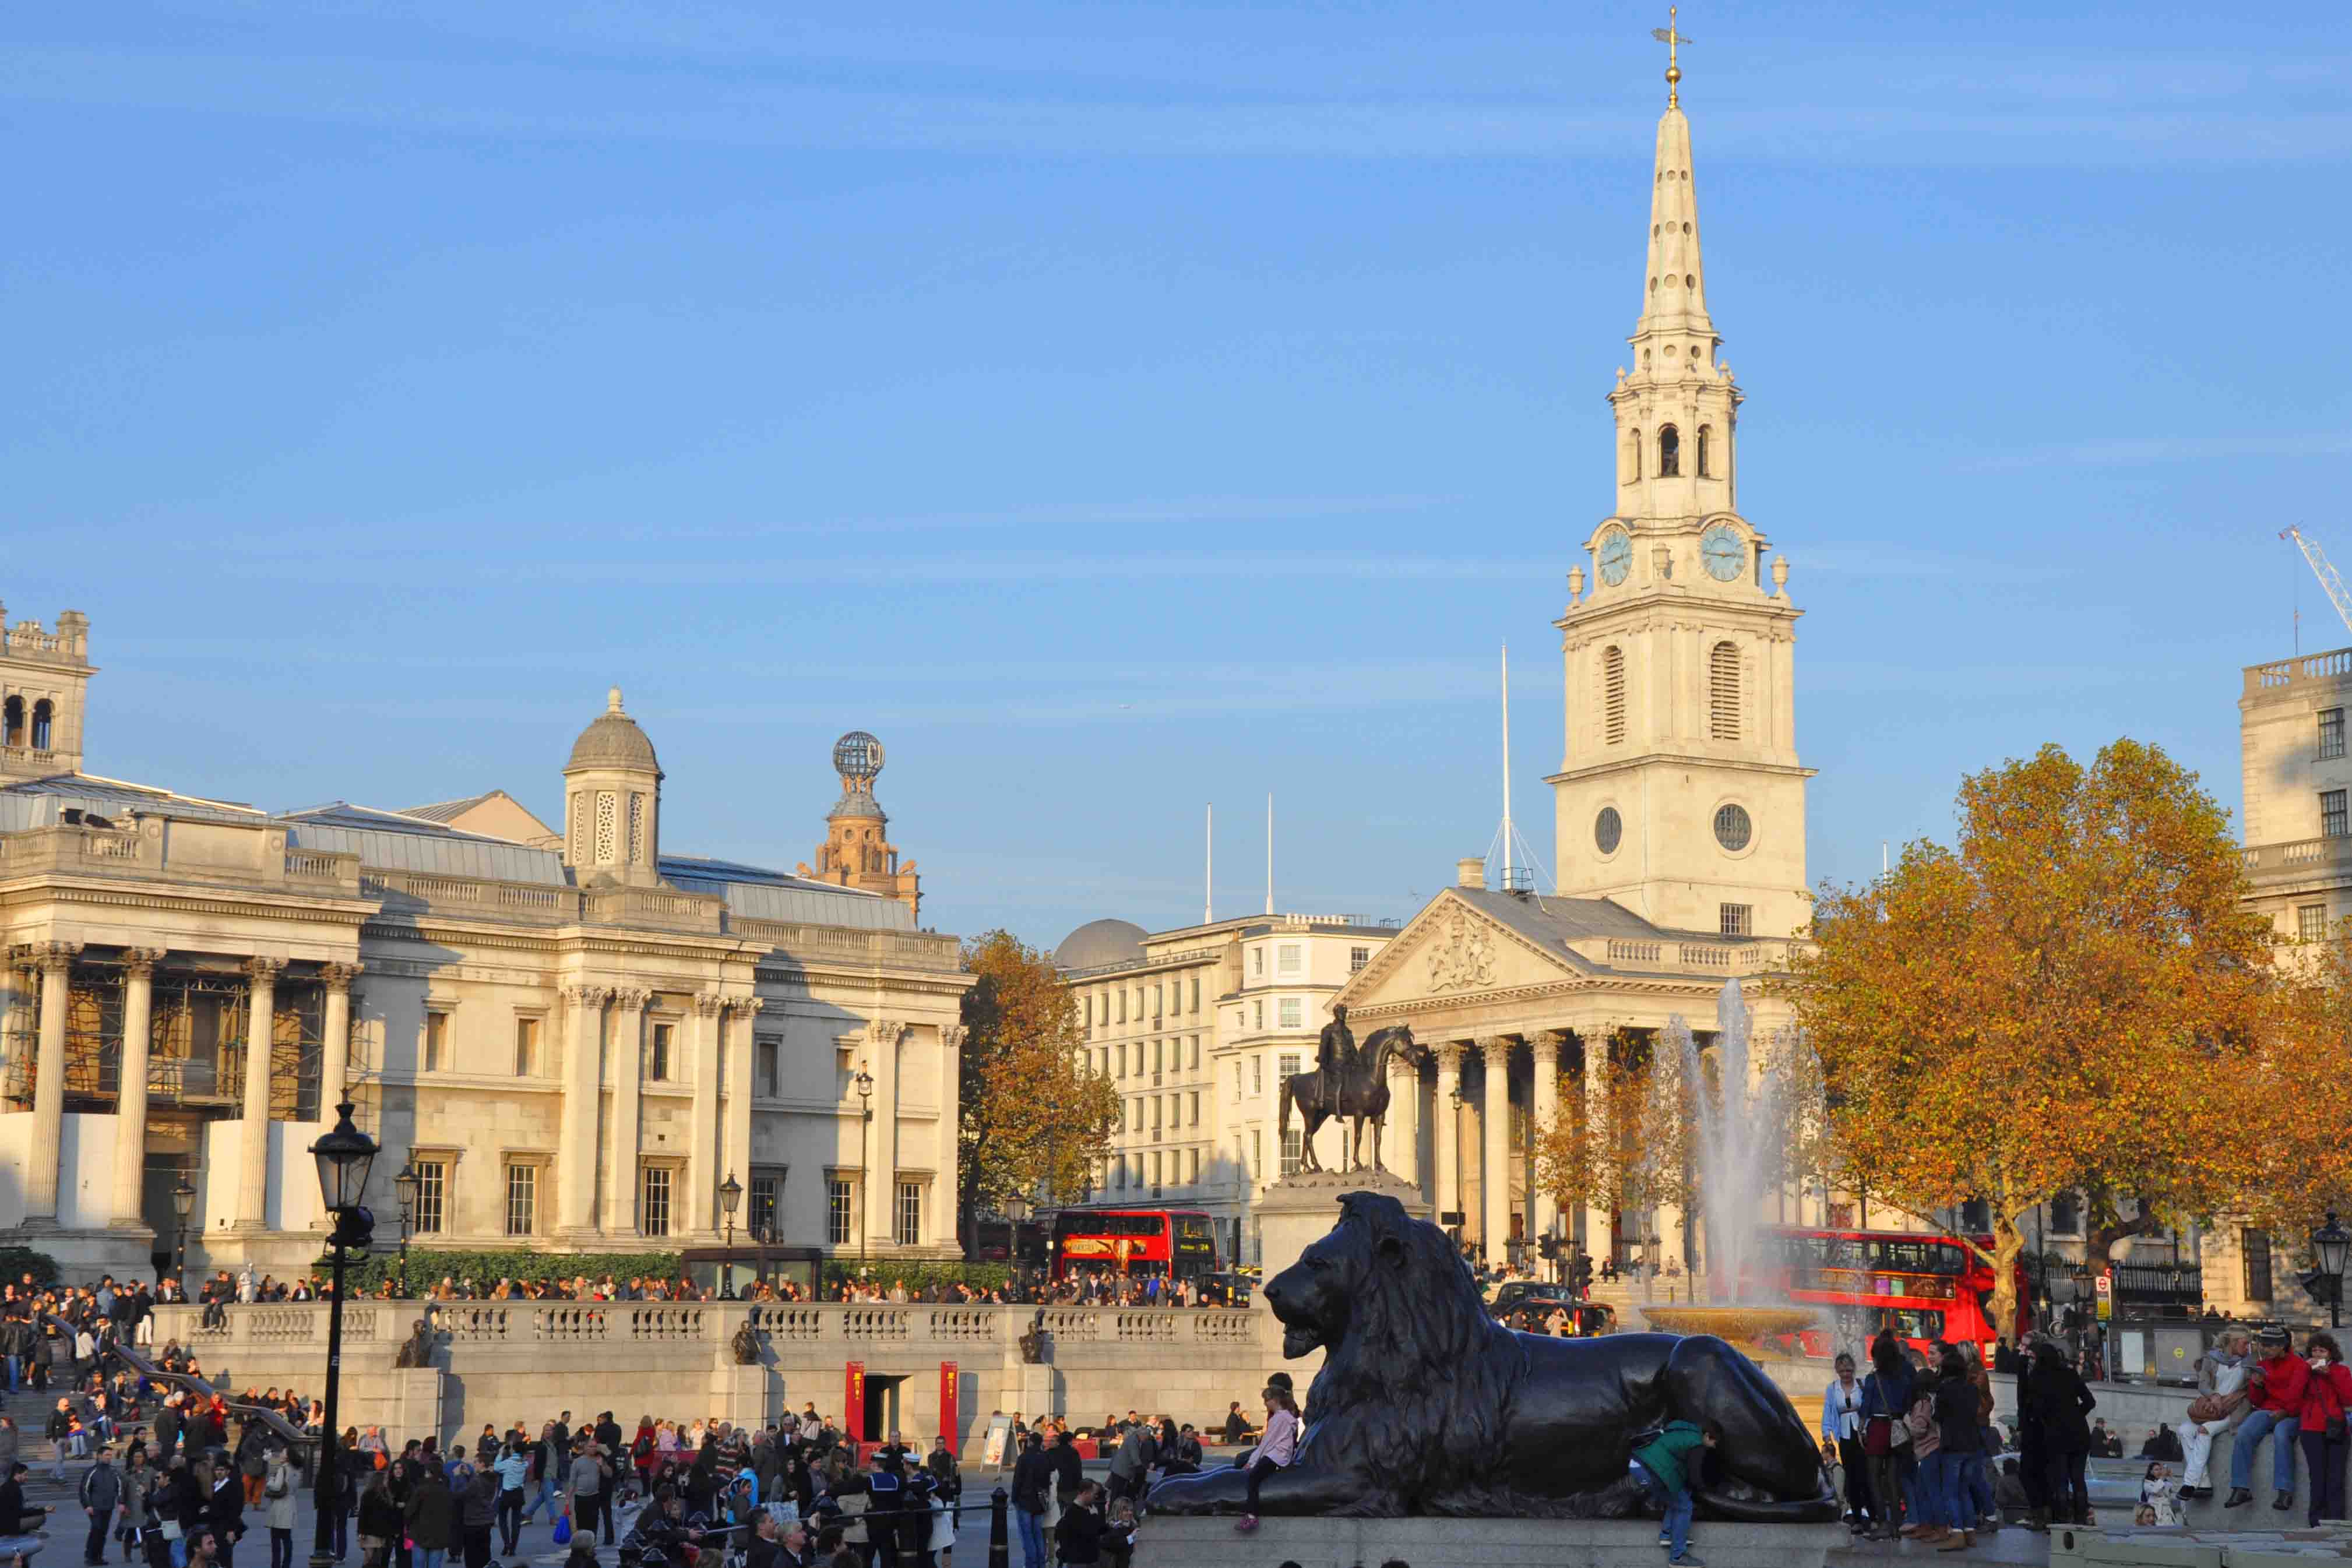 Trafalgar Square with lion sculpture and lots of people